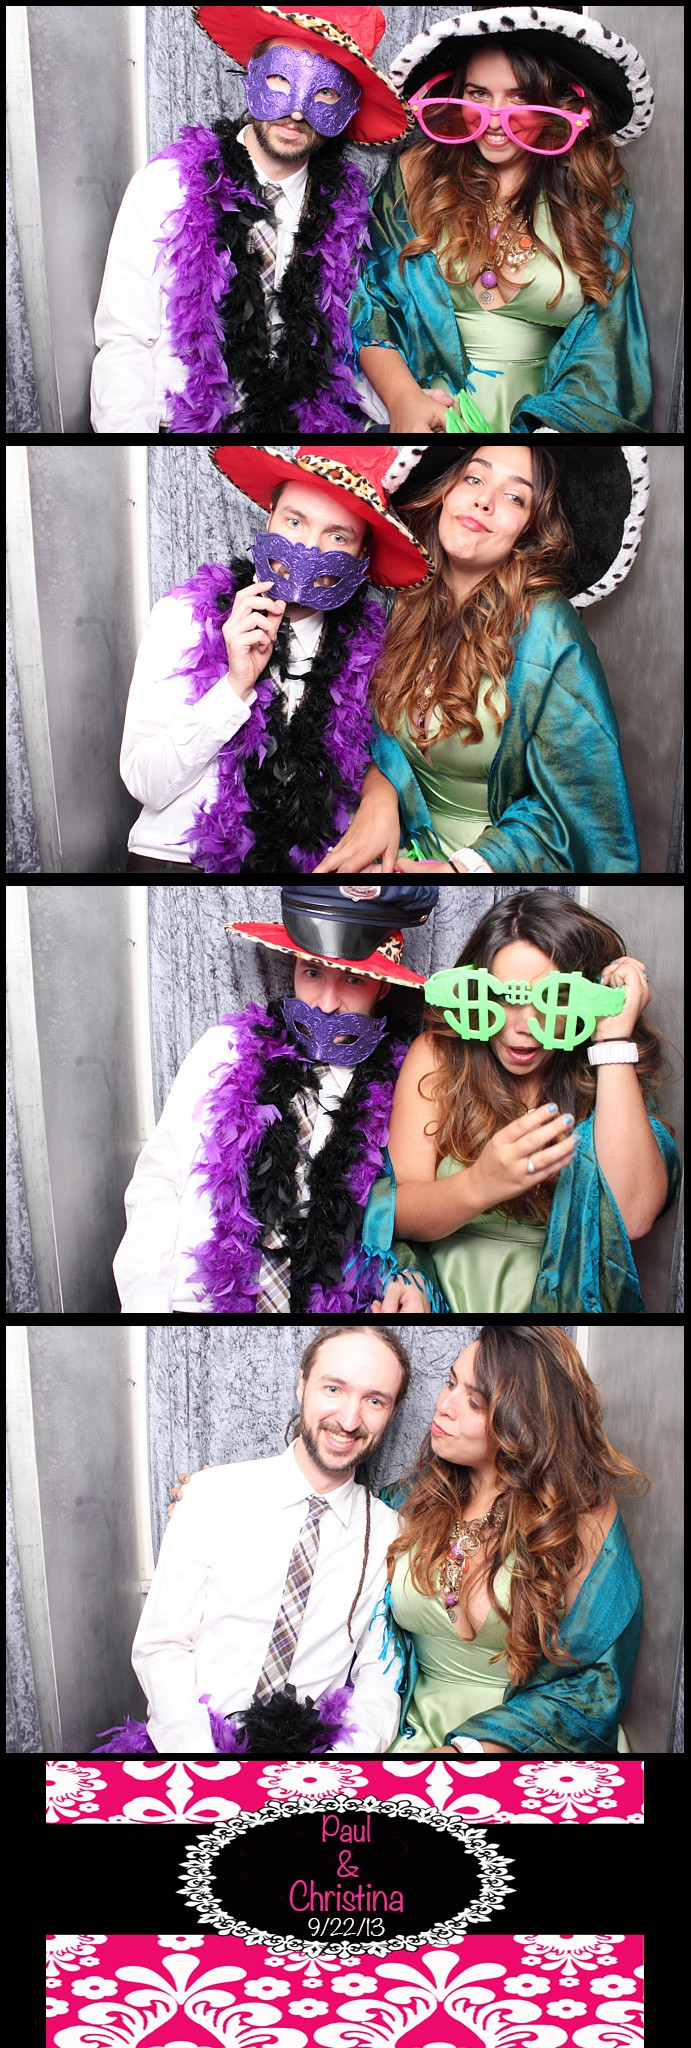 Limelight Entertainment's LED Photo booth in action at The Brownstone